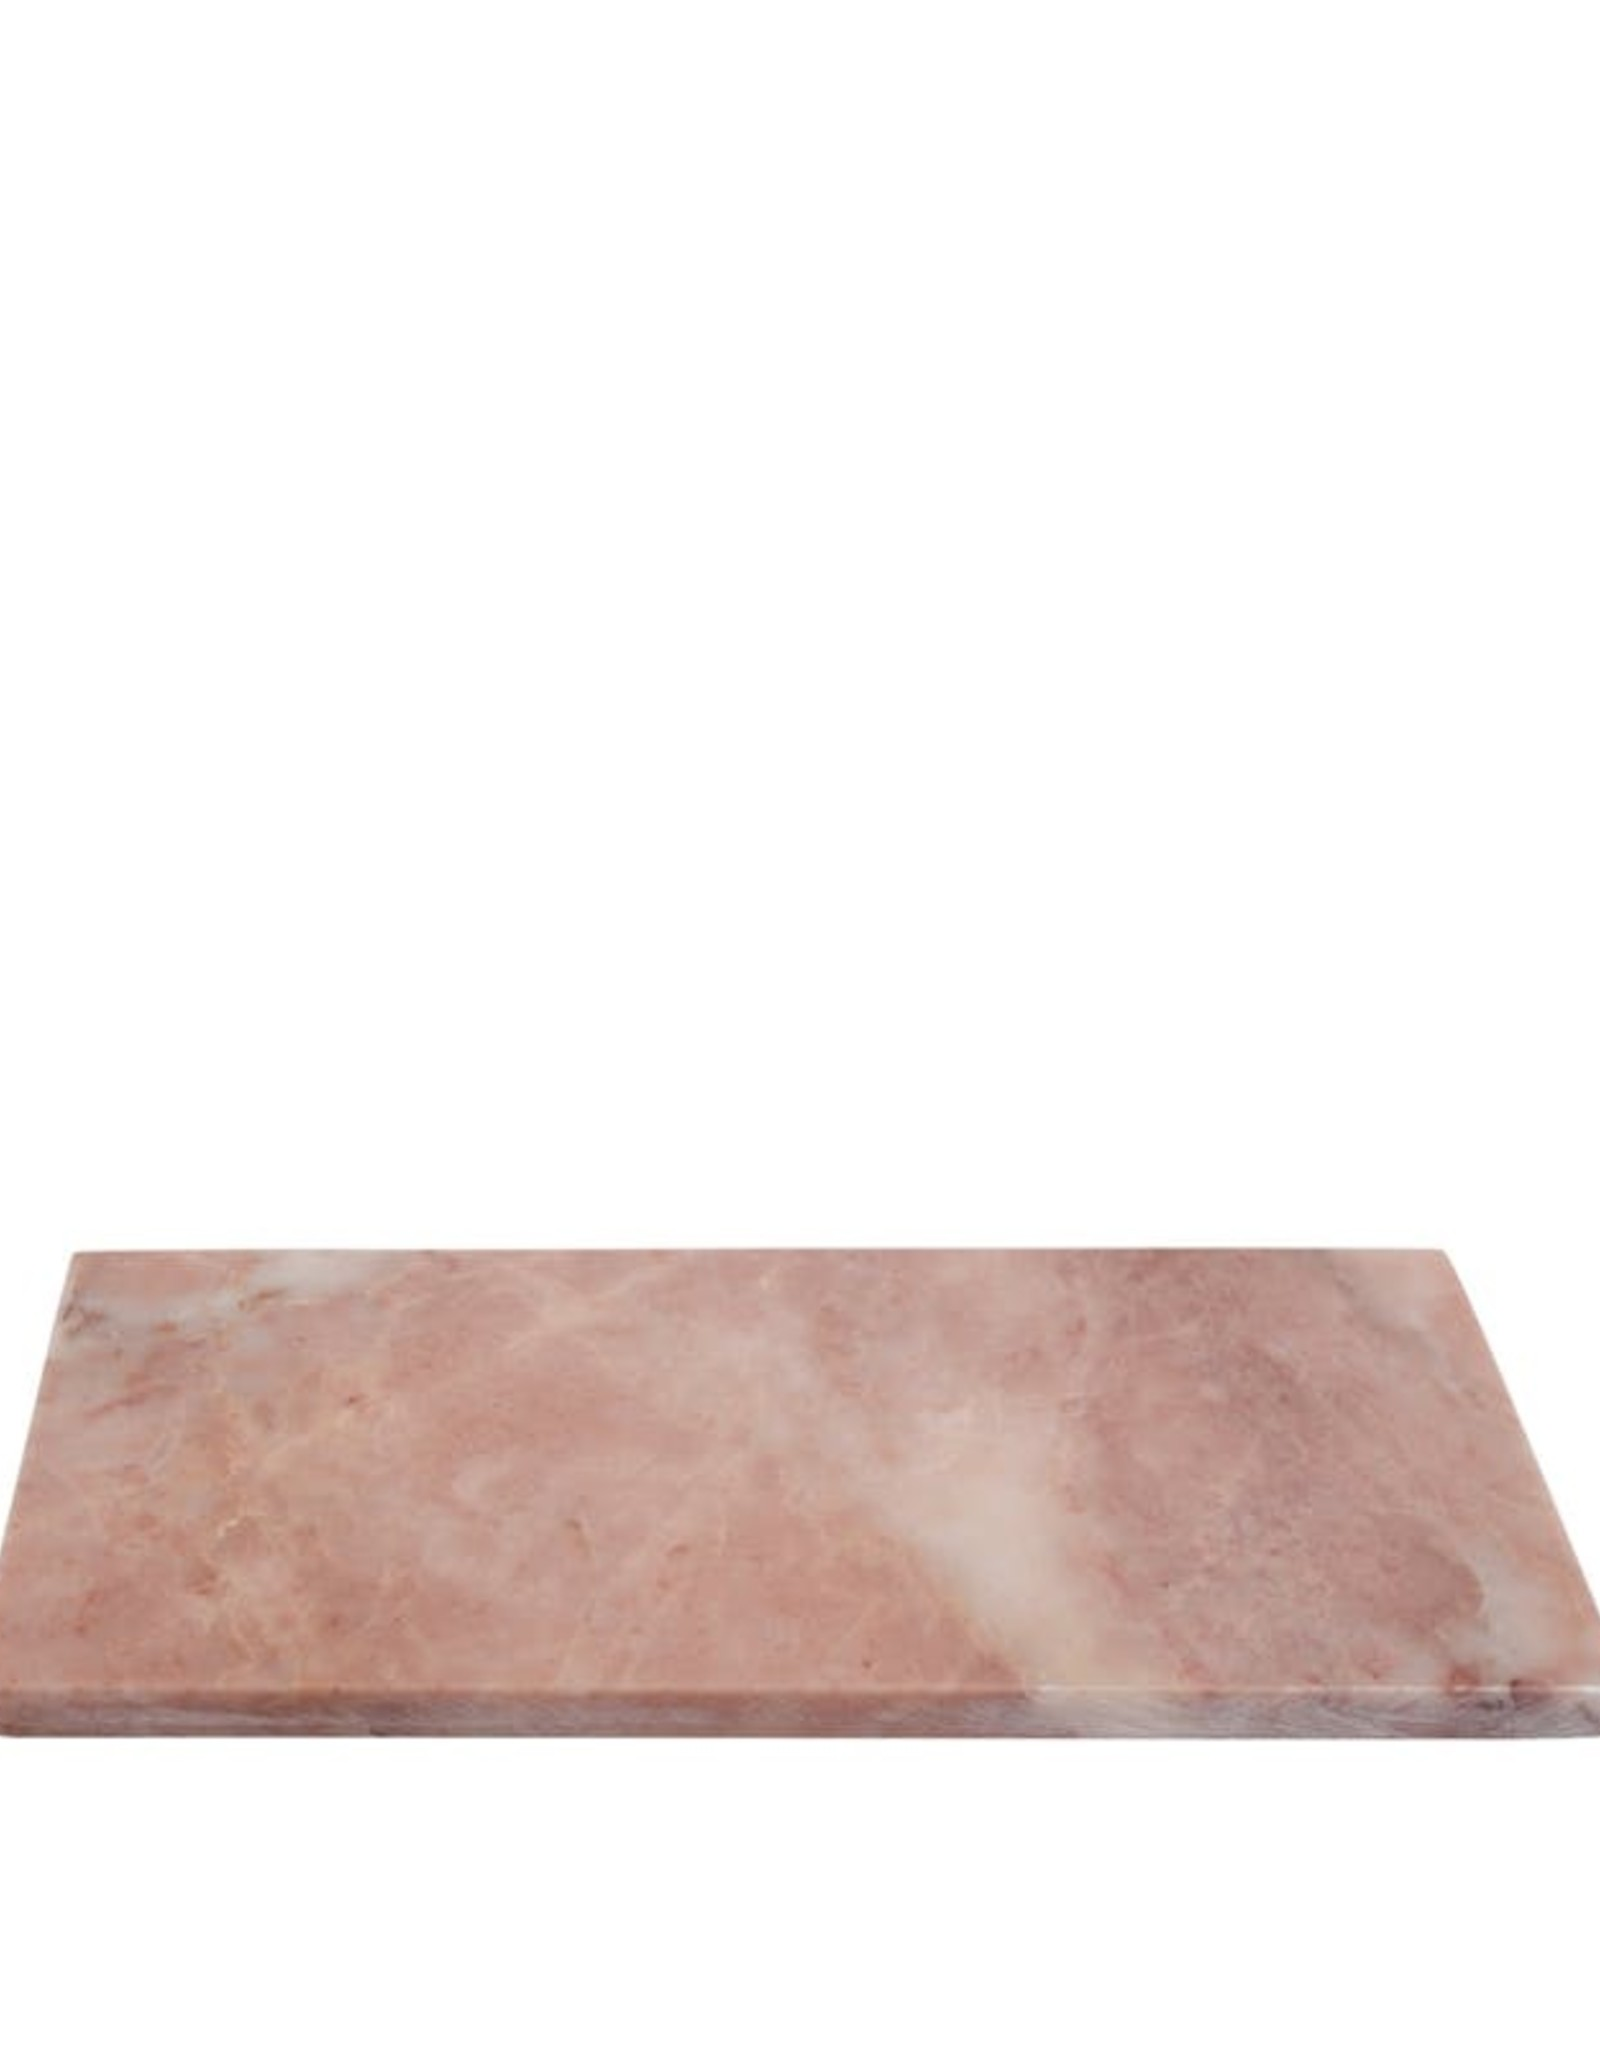 Stoned Stoned - pink rectangular board S